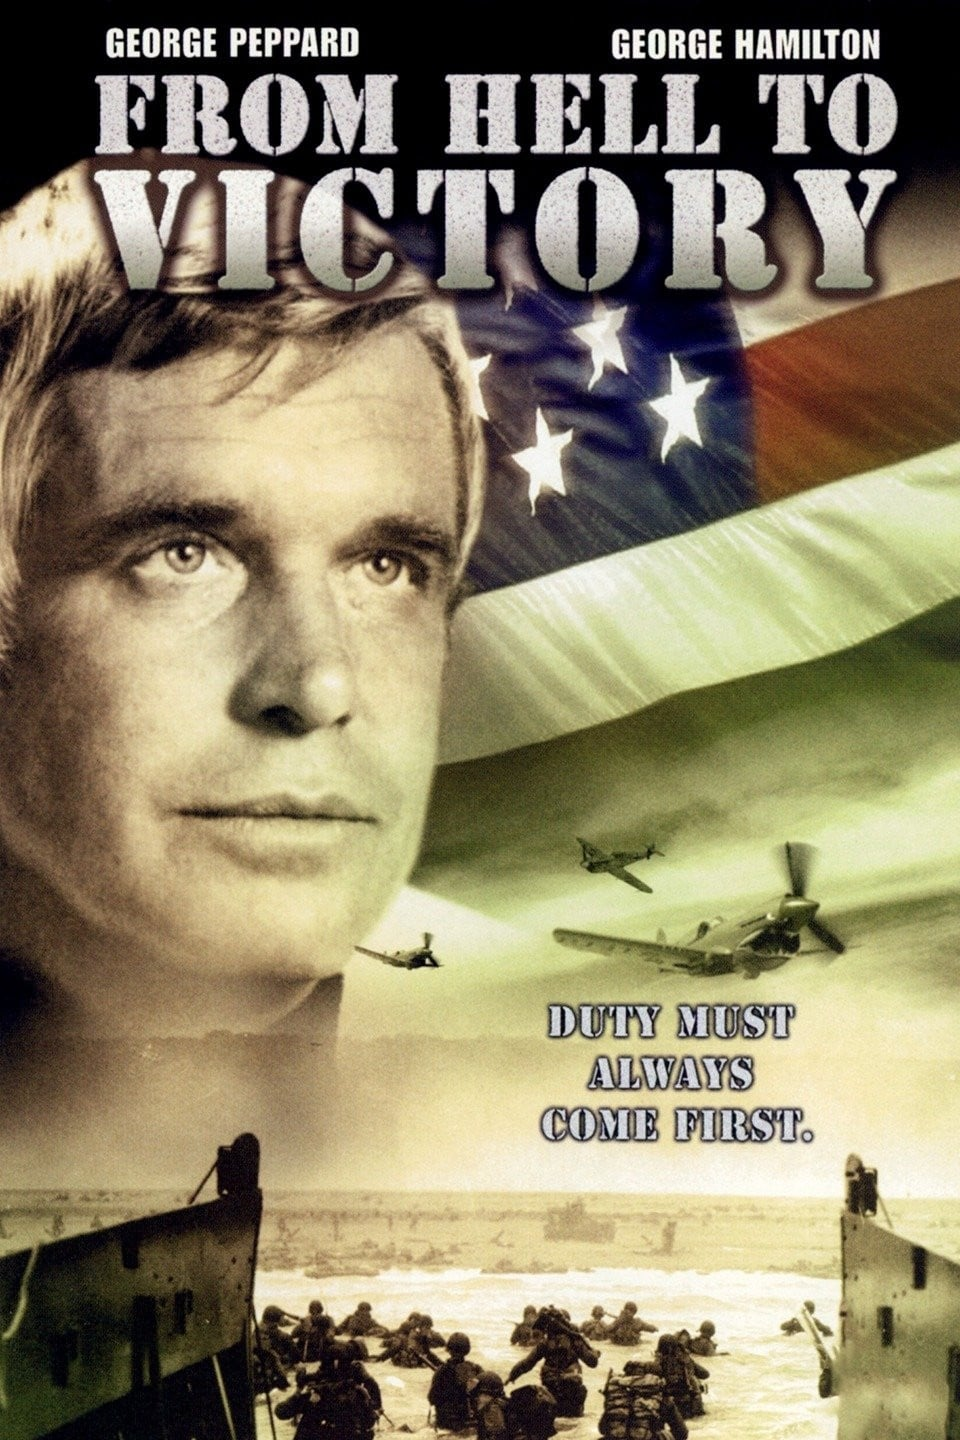 From Hell to Victory (1979)